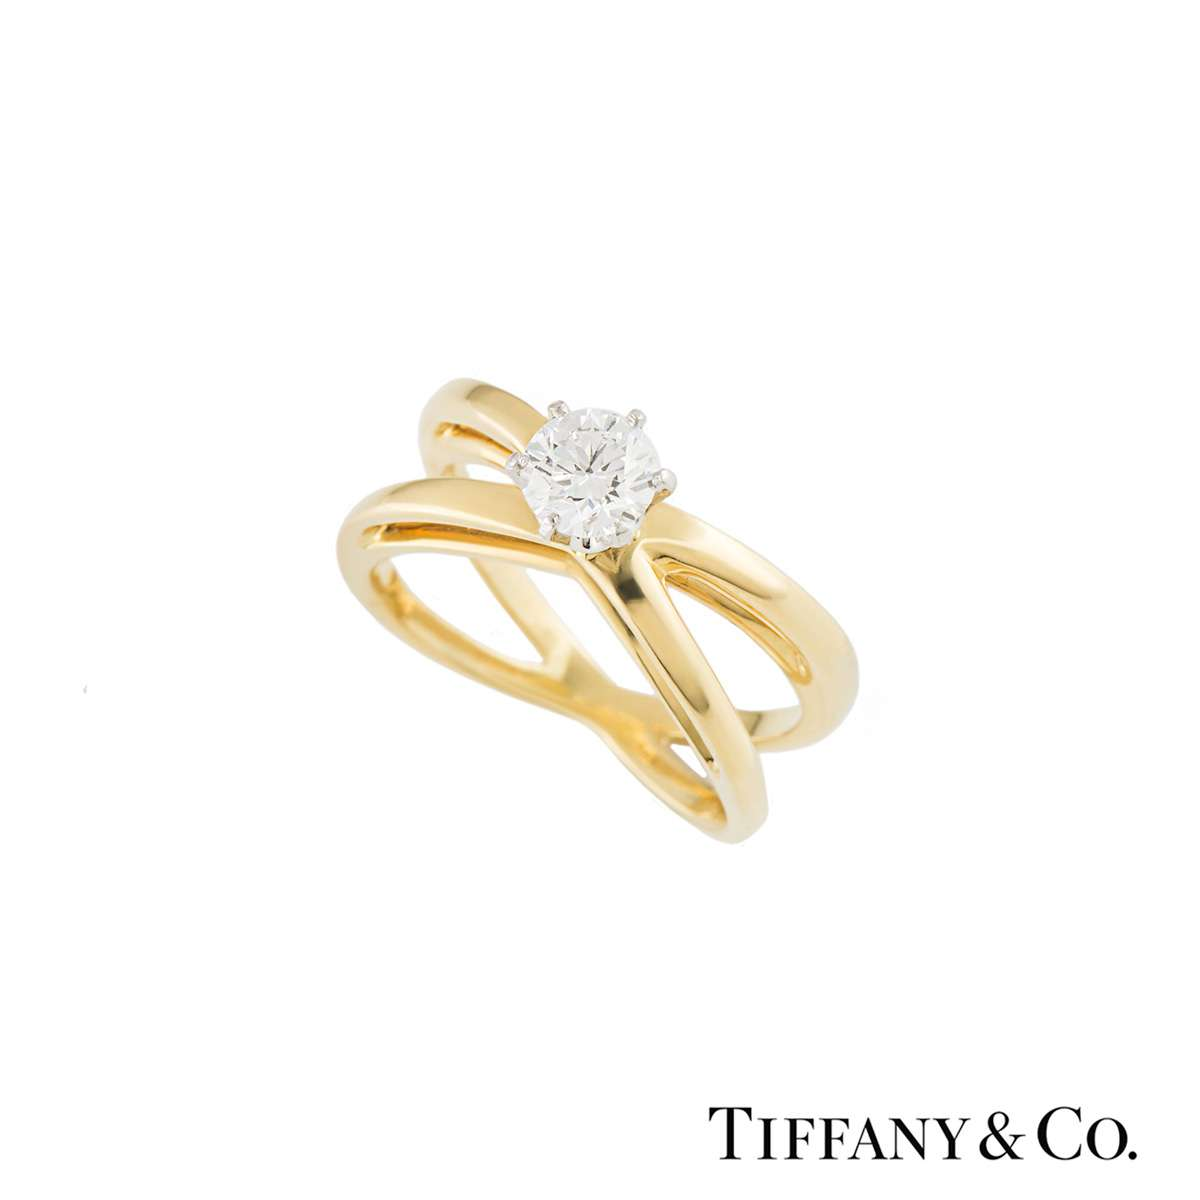 Tiffany & Co. Crossover Diamond Ring